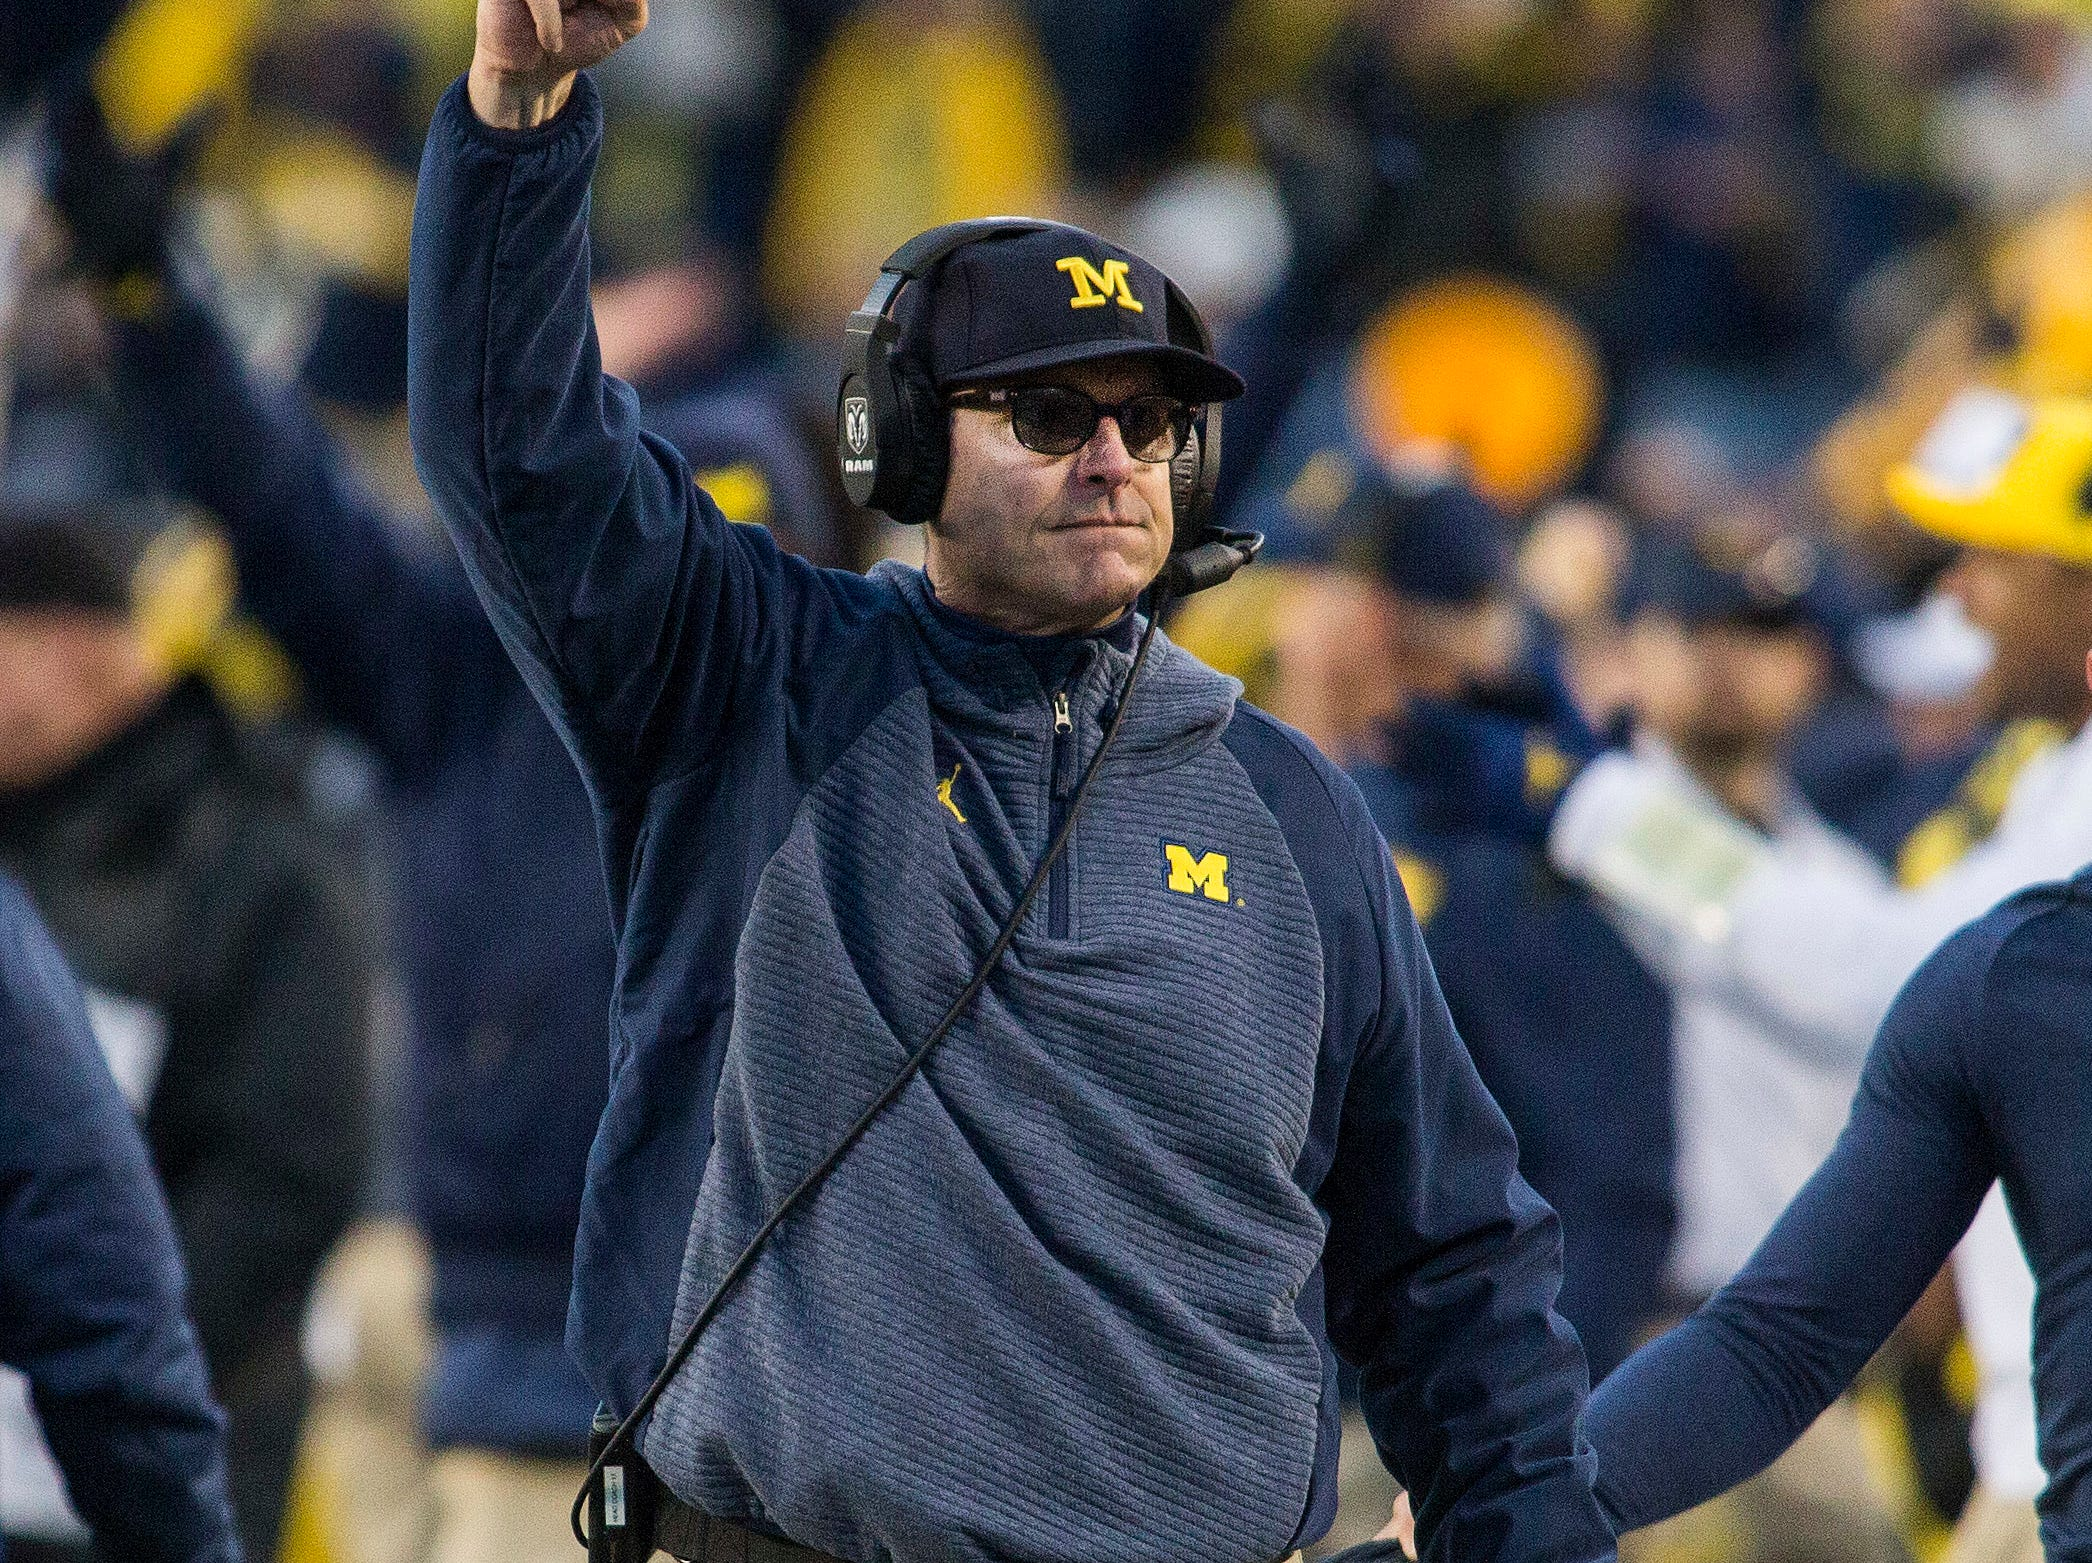 Michigan head coach Jim Harbaugh celebrates an official's confirmation on a Michigan touchdown in the third quarter of an NCAA college football game against Penn State in Ann Arbor, Mich., Saturday, Nov. 3, 2018. Michigan won 42-7. (AP Photo/Tony Ding)